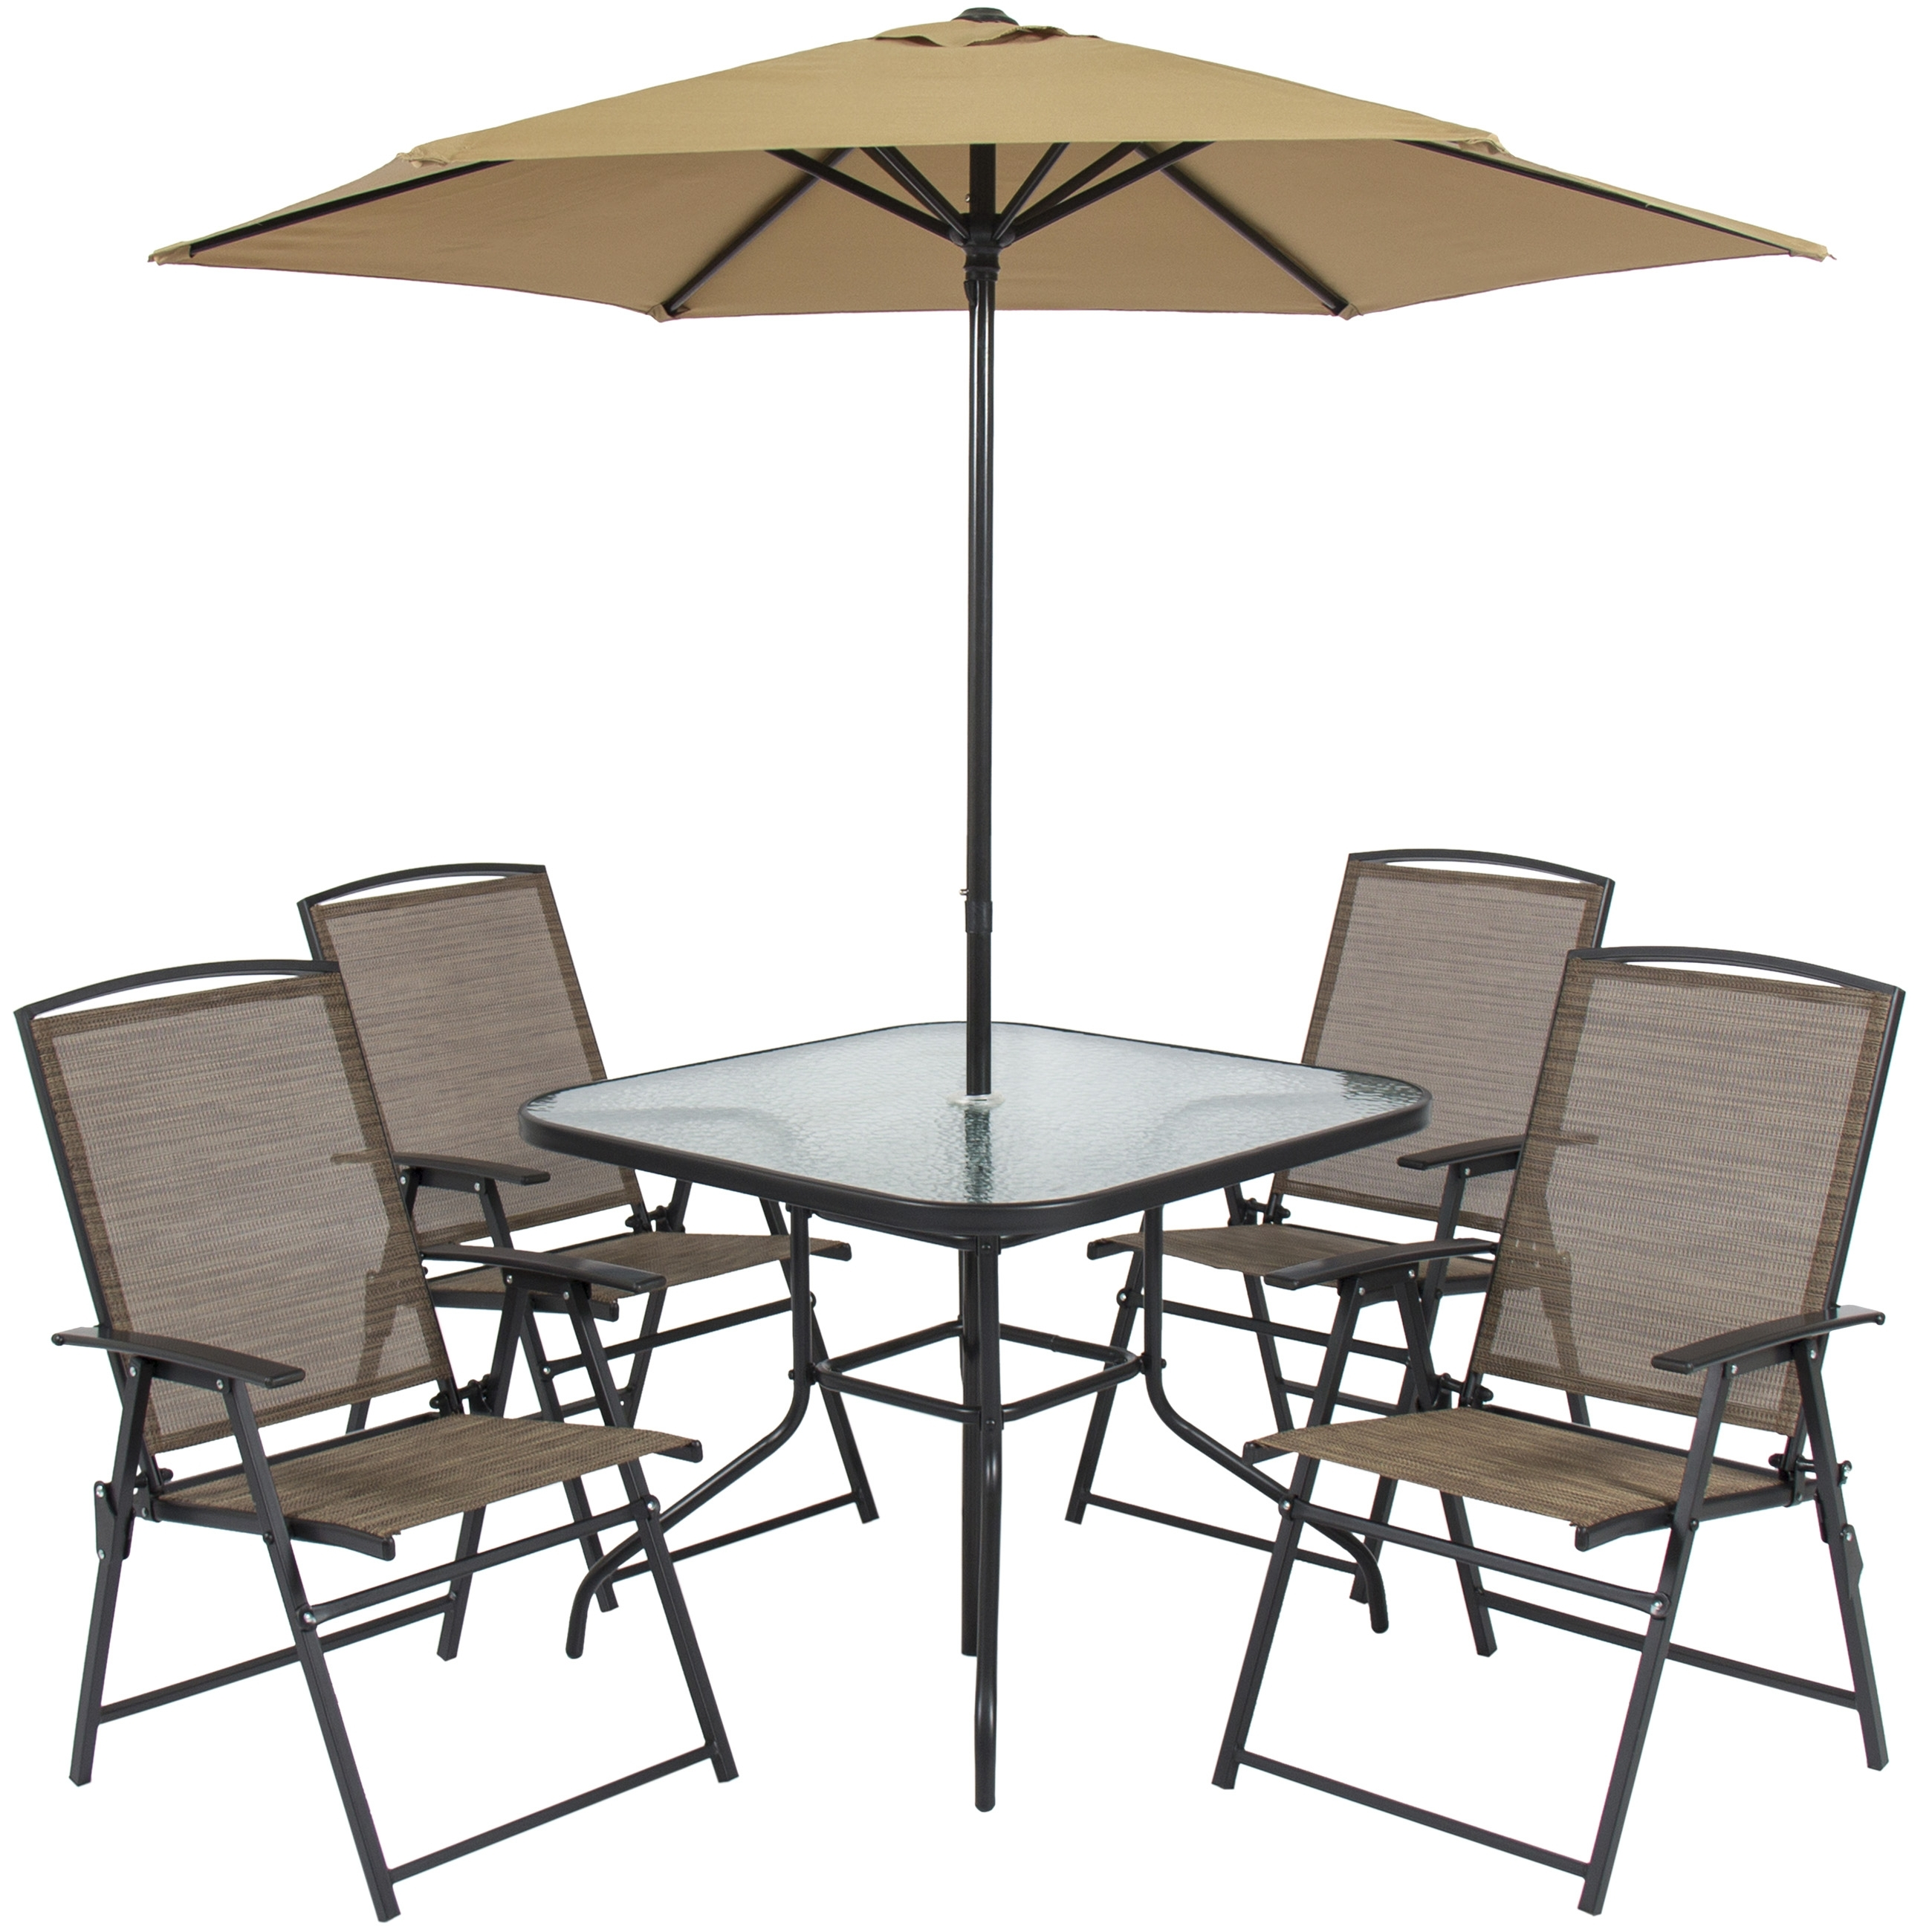 Patio Table And Chairs With Umbrellas In Most Up To Date Patio Table Chairs Umbrella Set New Best Choice Products Chair With (View 11 of 20)